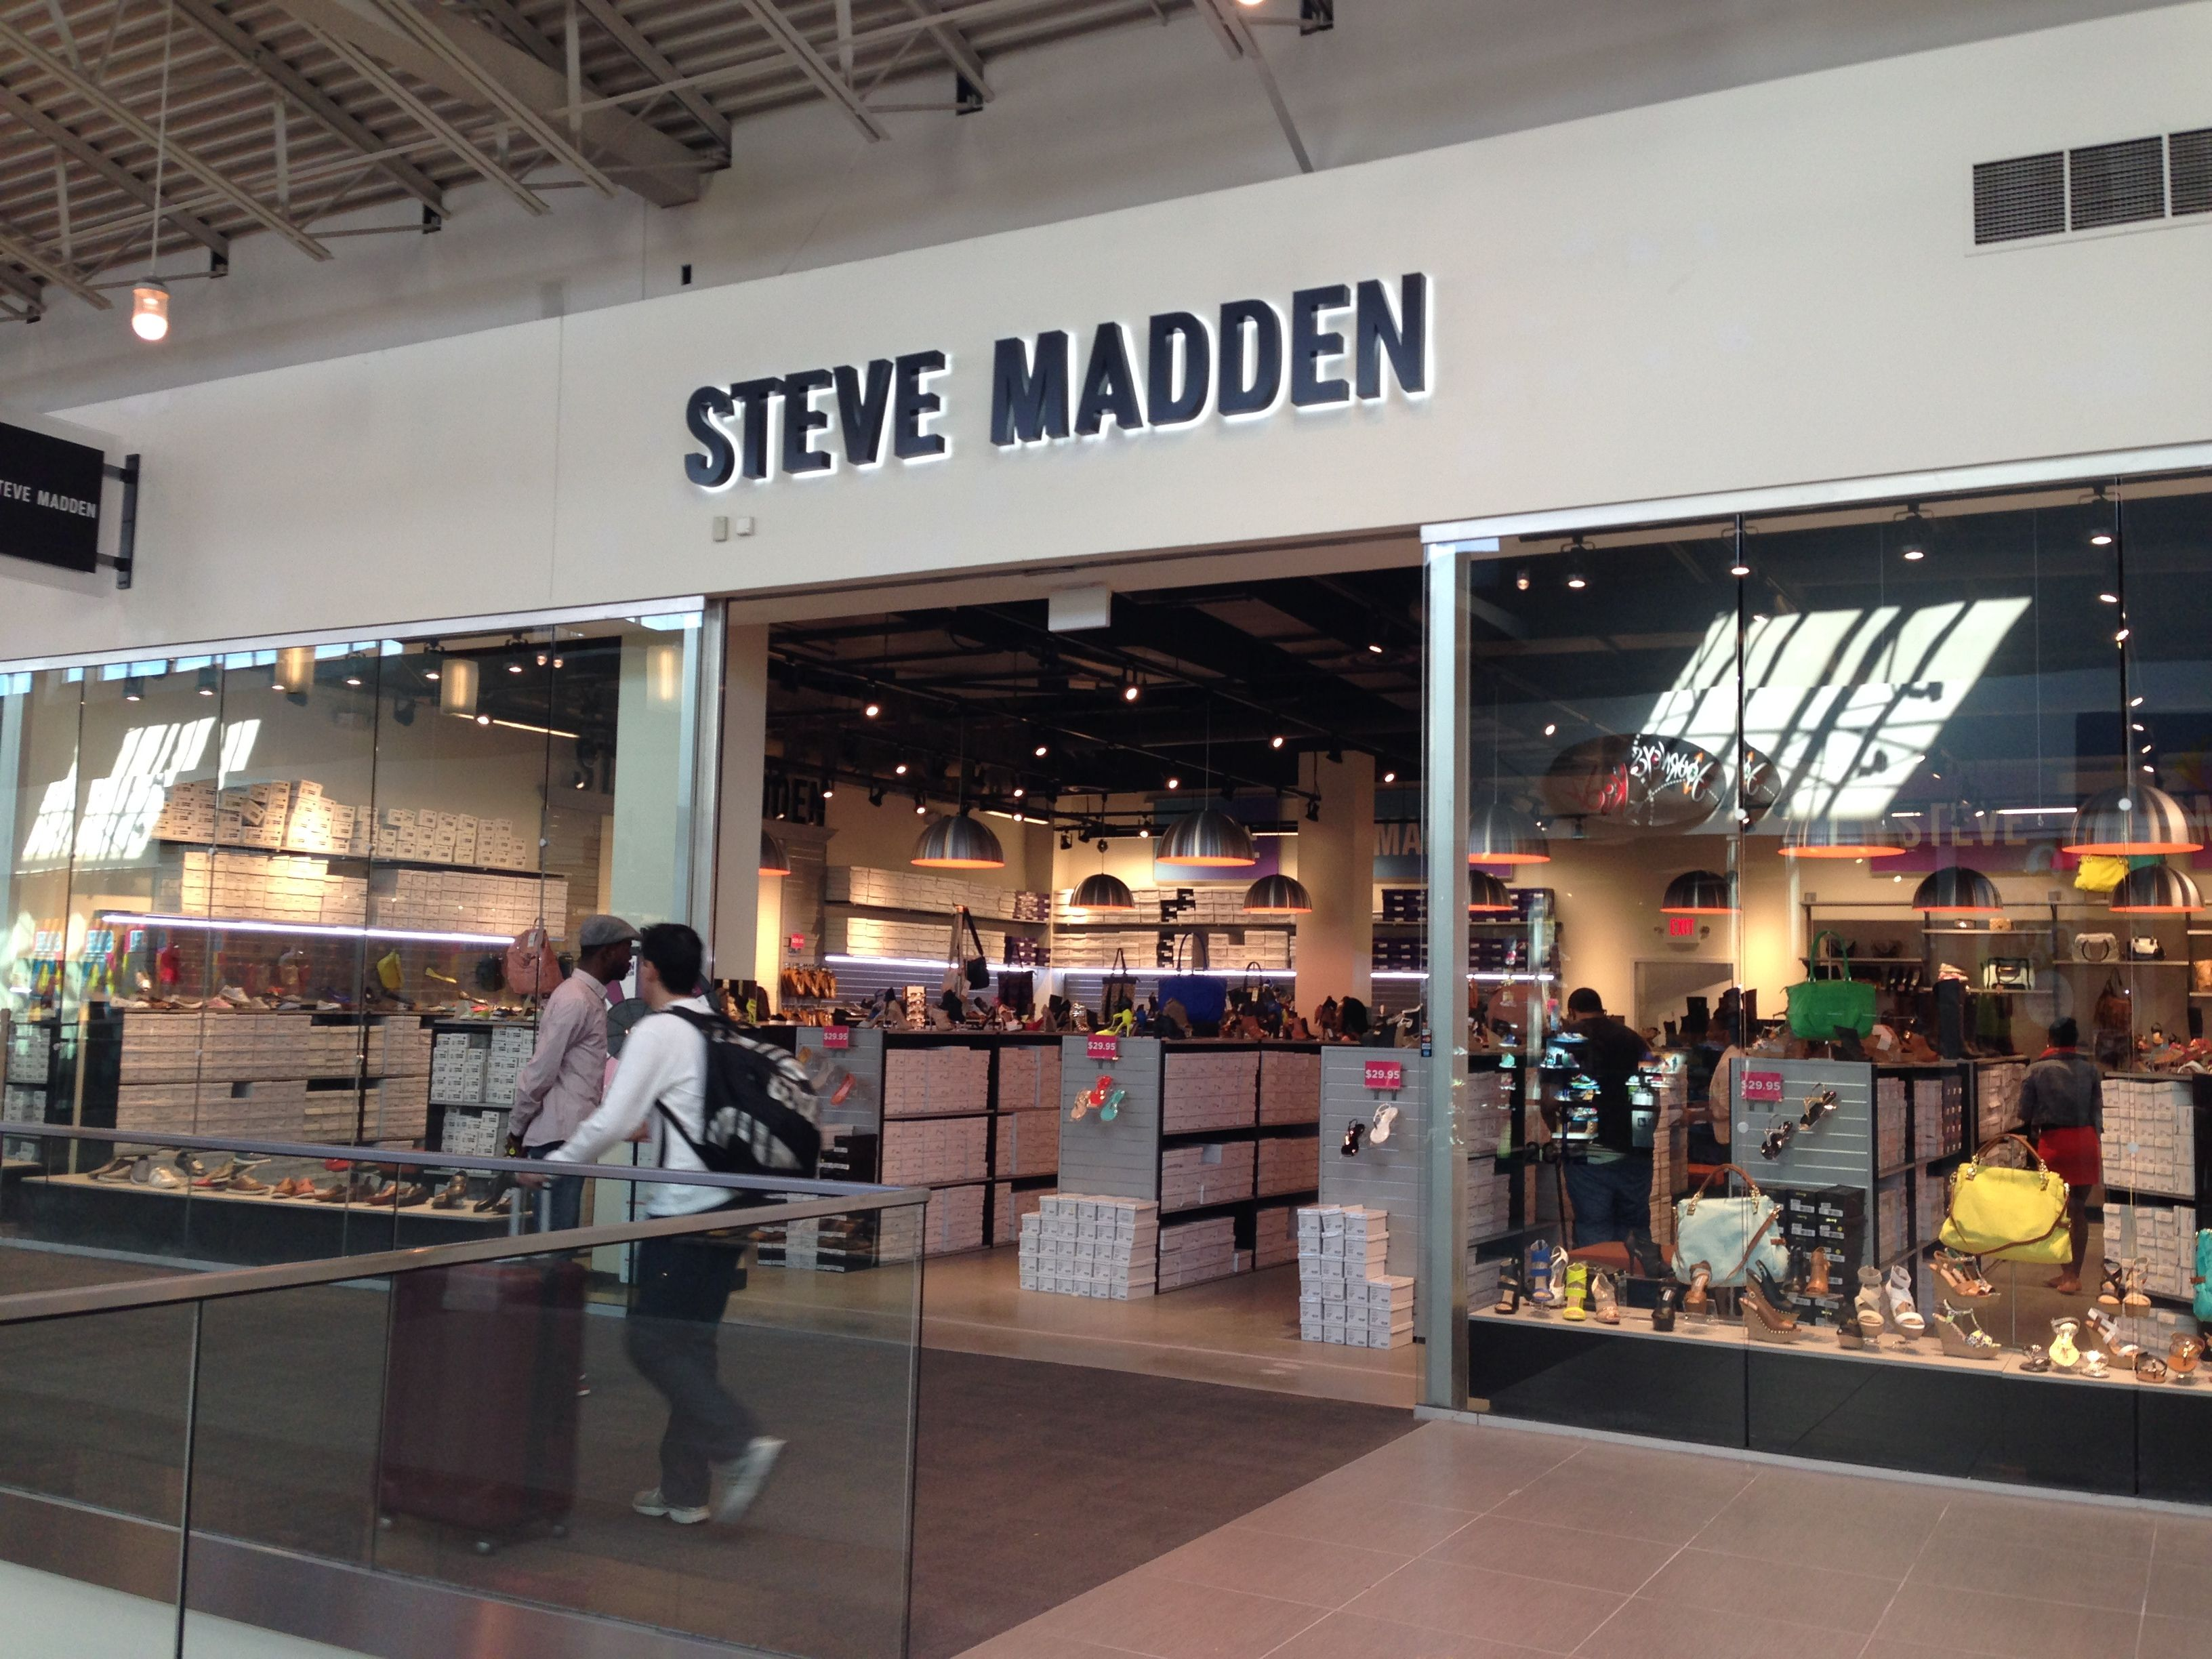 Steve Madden now open! Steve madden, Mall stores, Dream